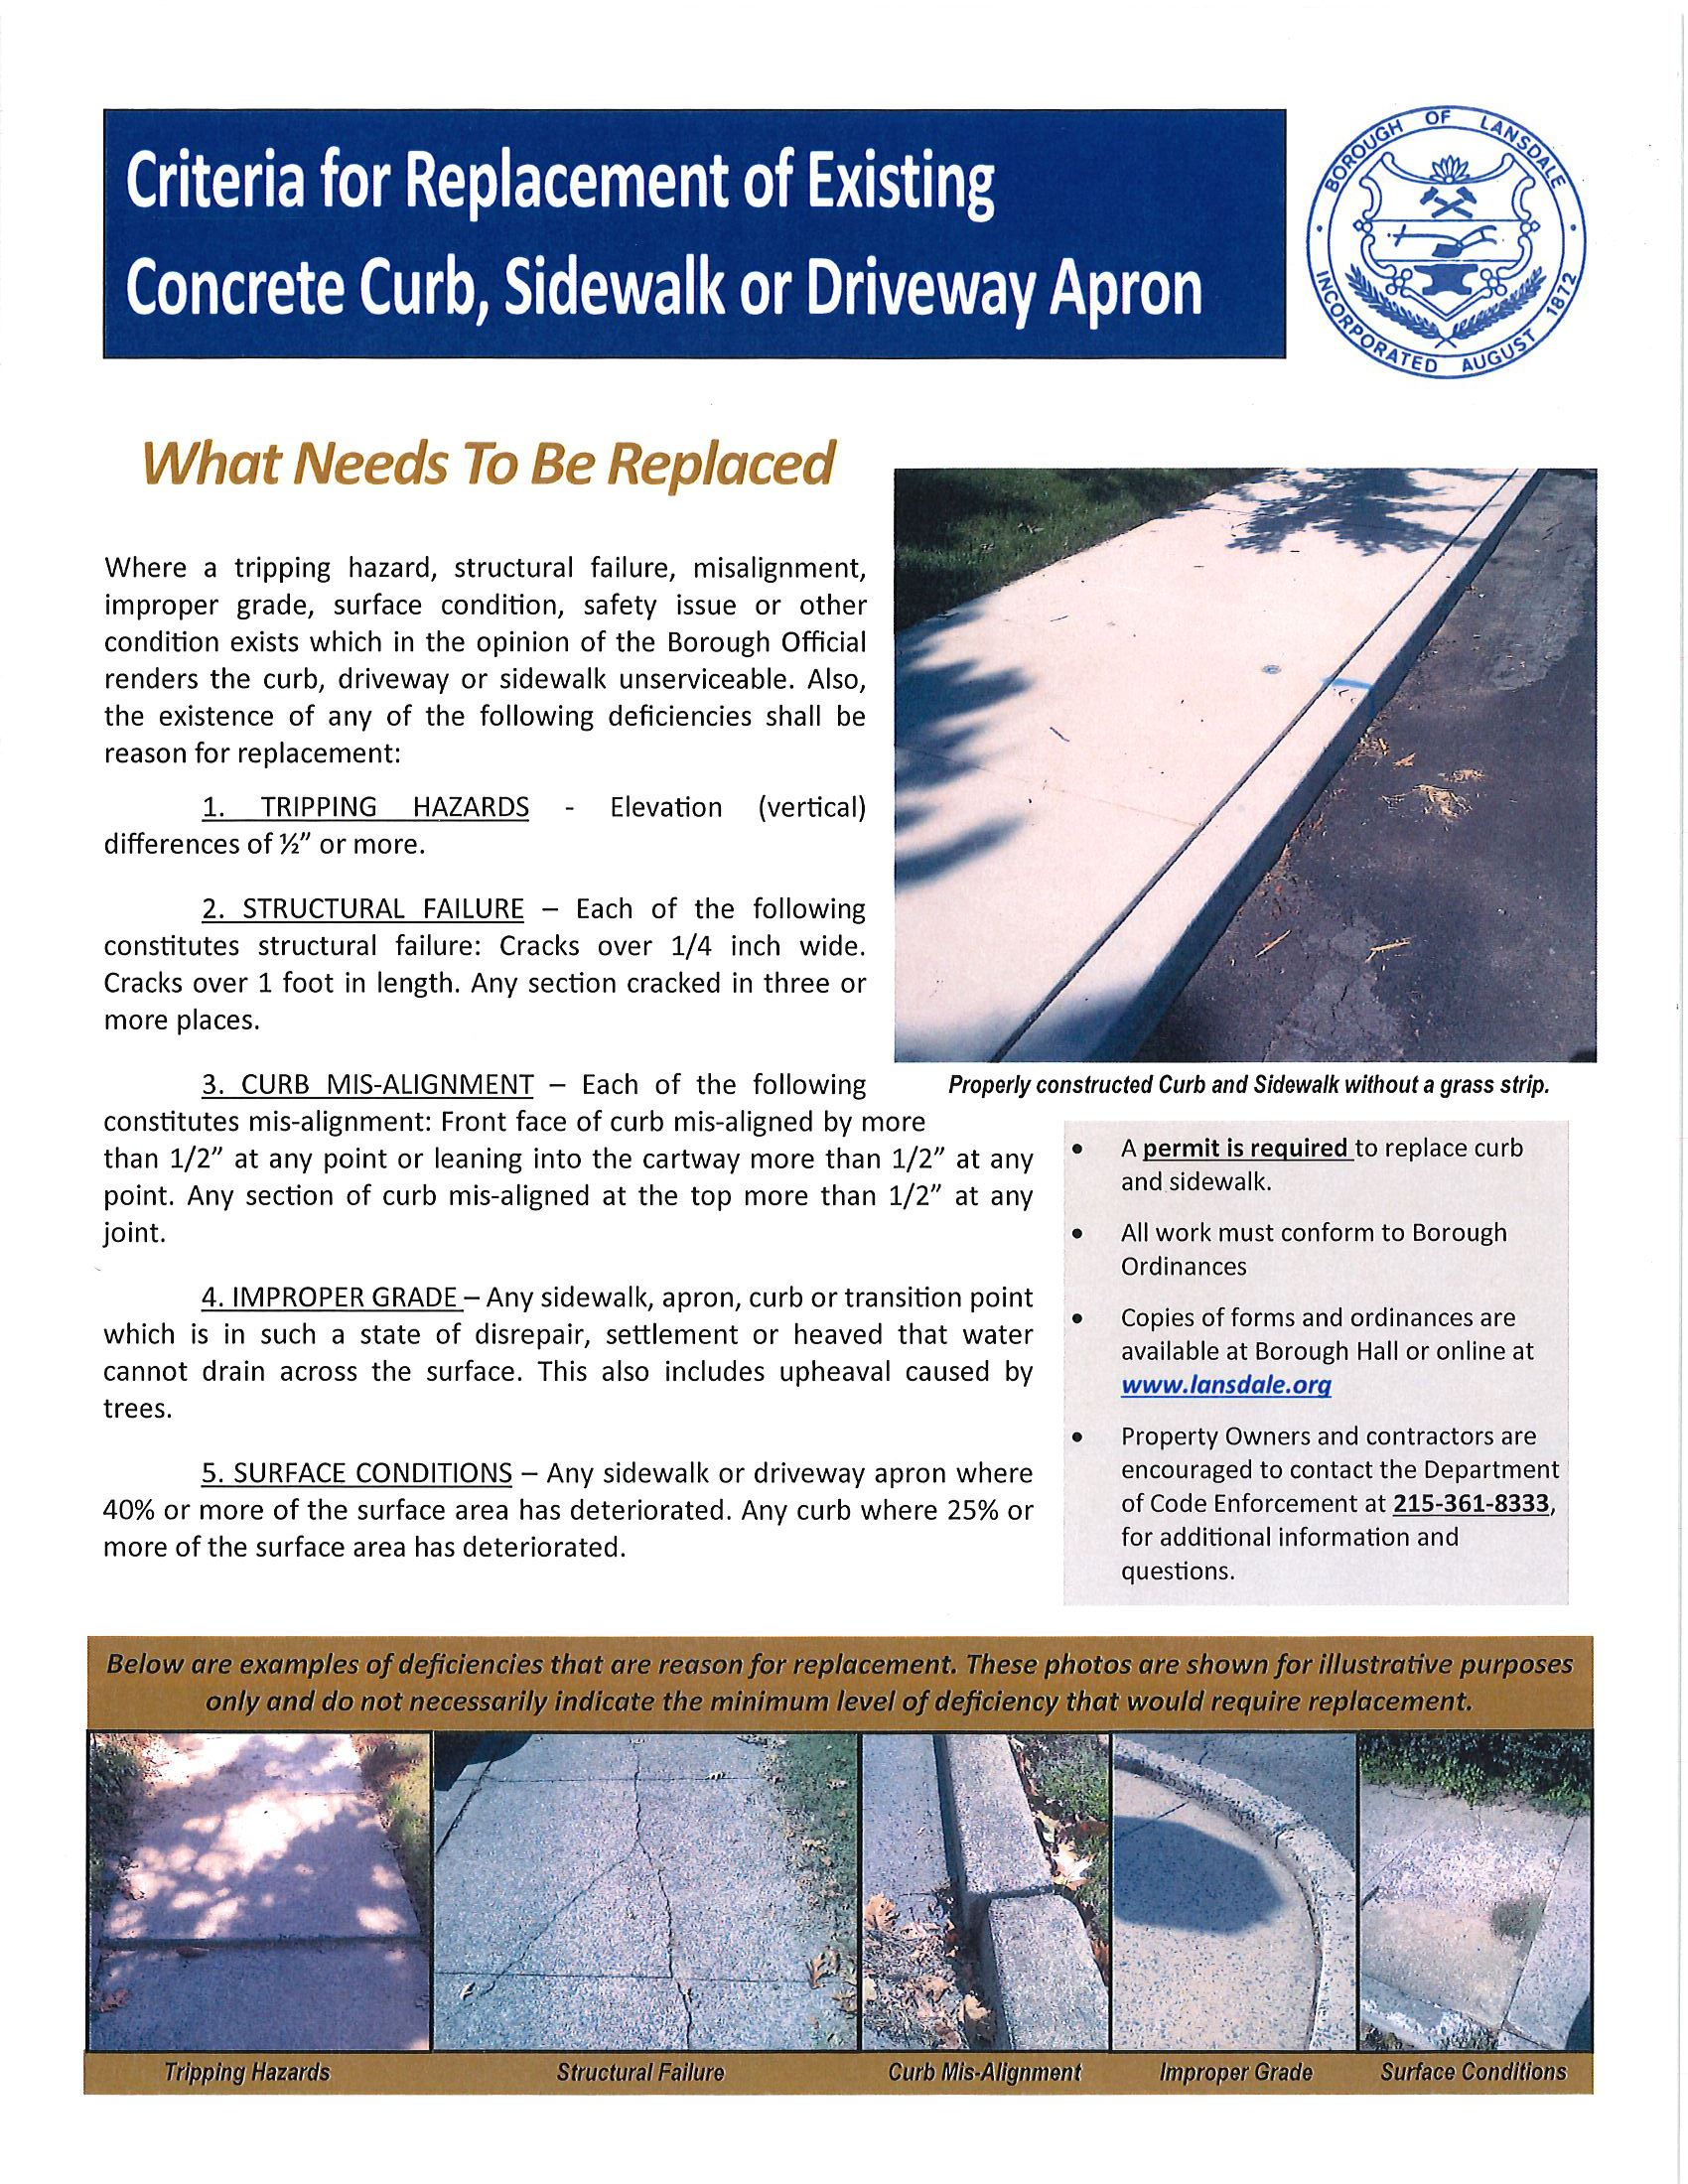 Curb and sidewalk replacement criteria - illustrated